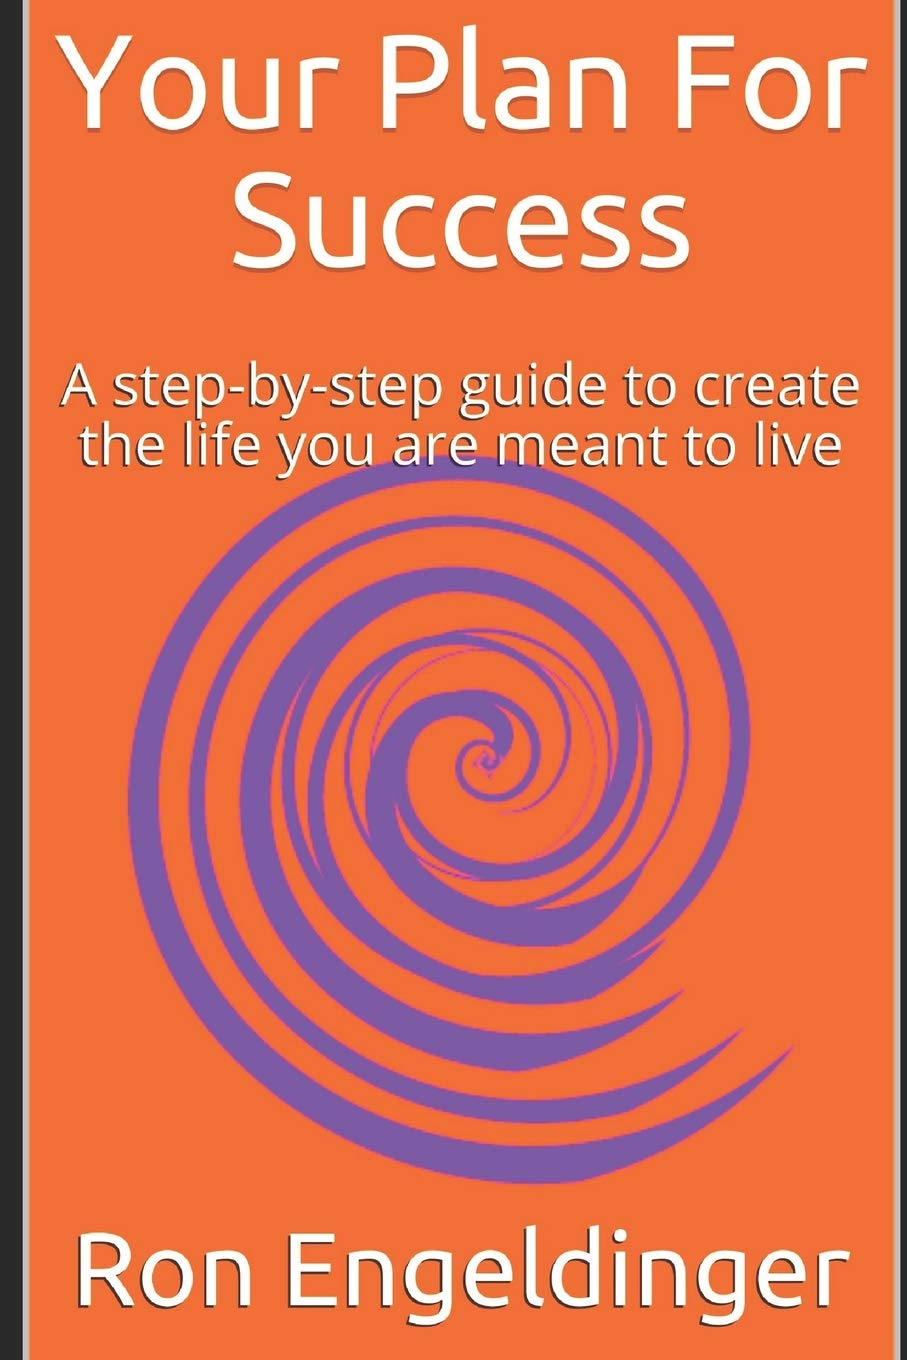 Download Your Plan For Success: A step-by-step guide to create the life you are meant to live ebook